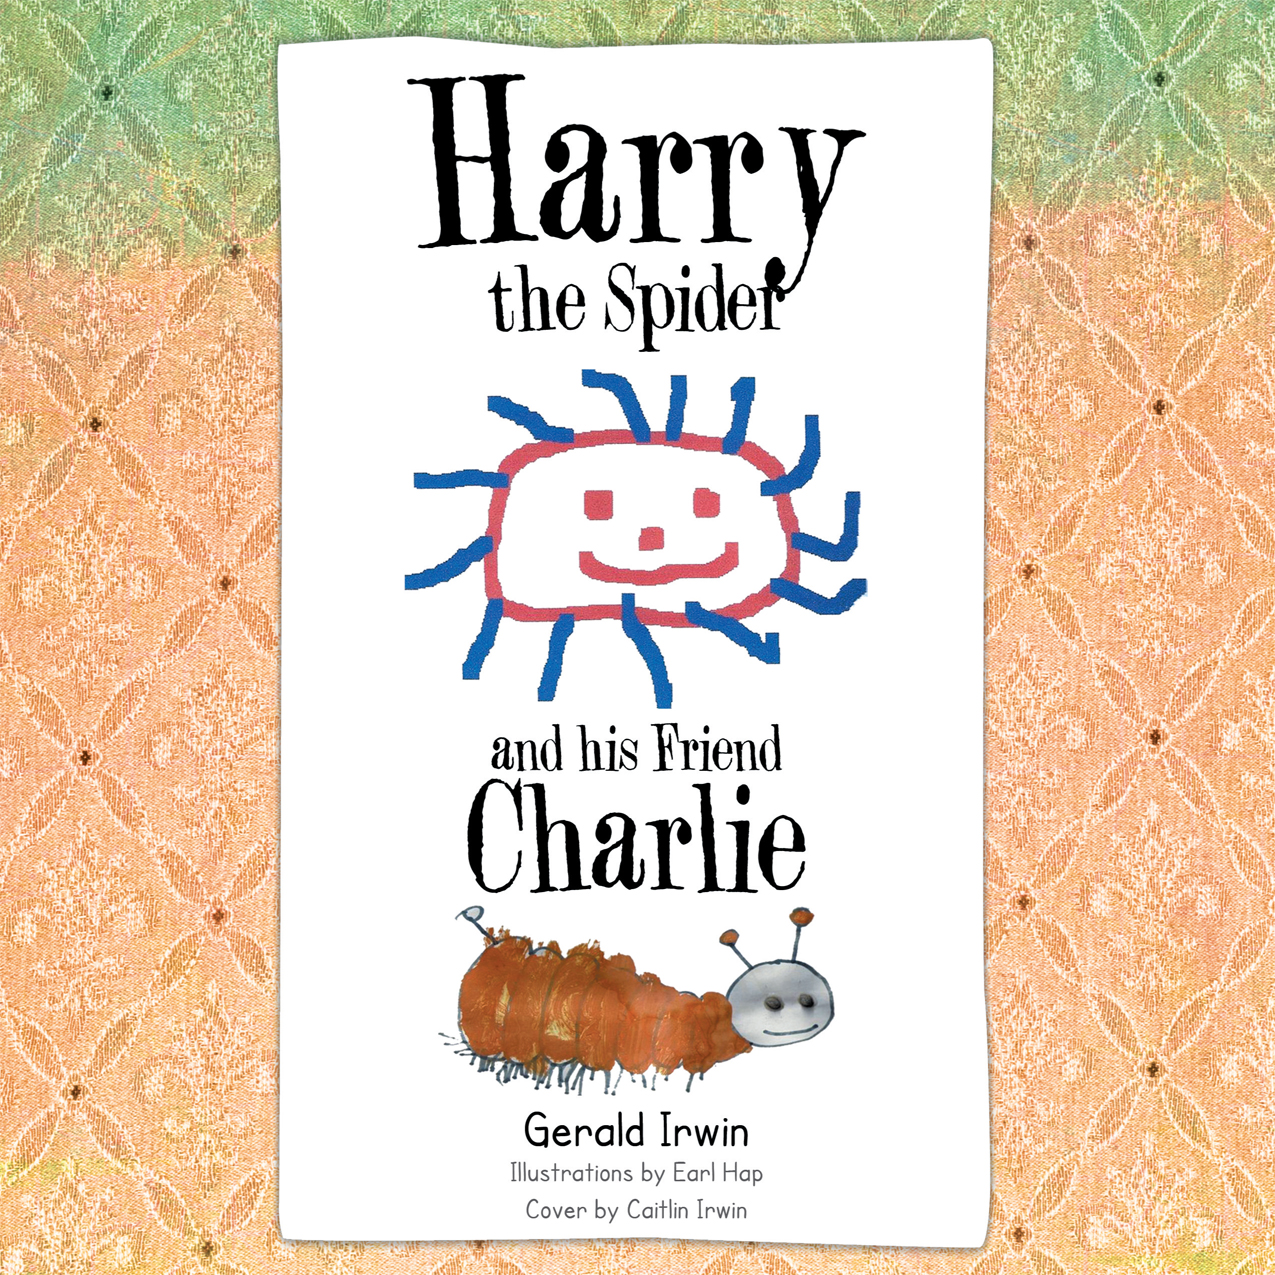 Harry the Spider and his friend Charlie